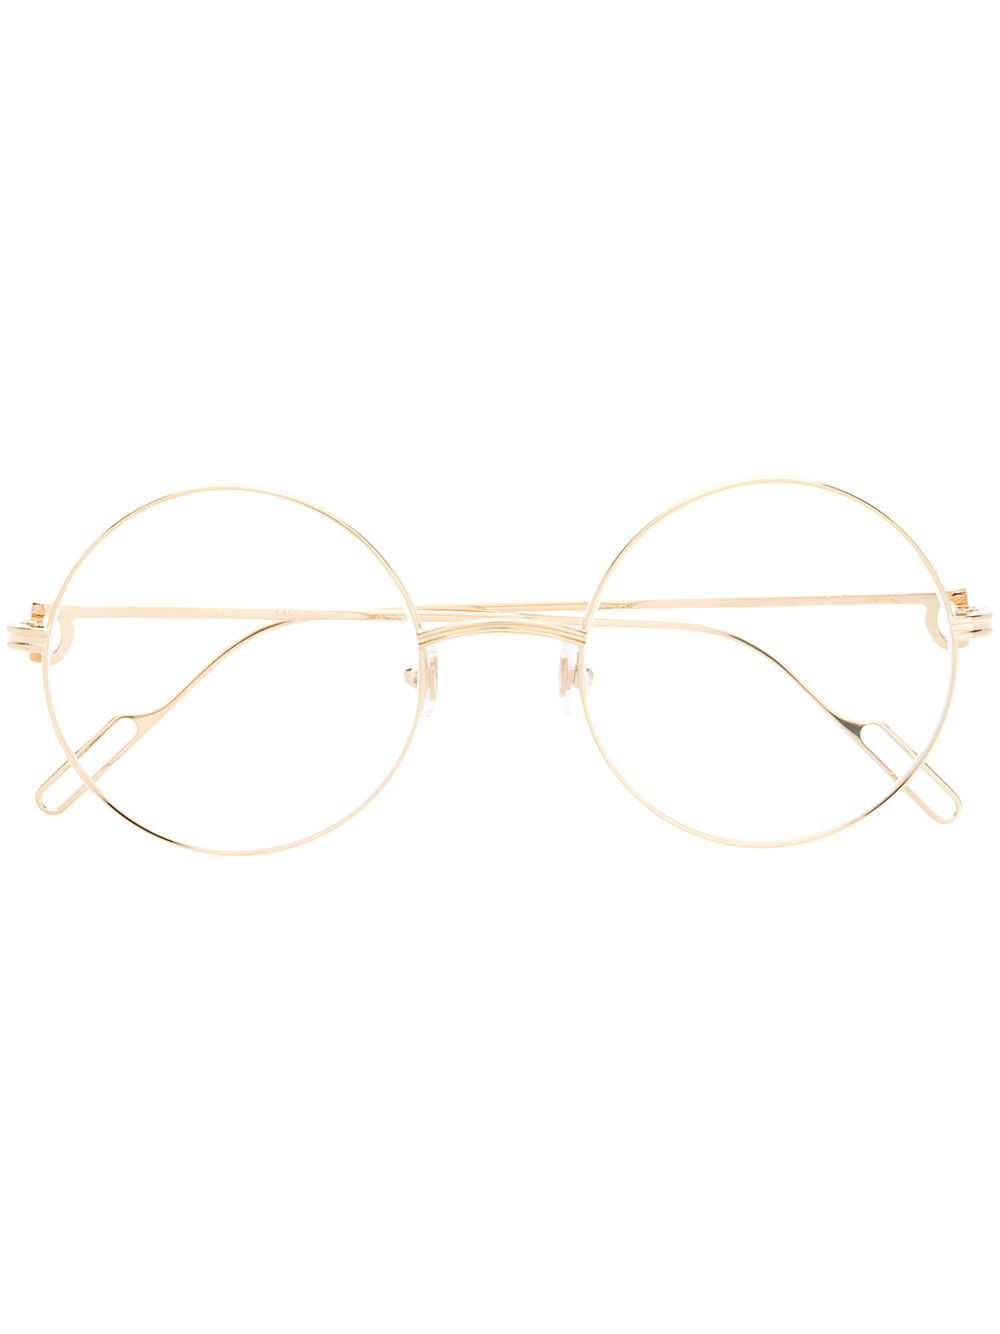 3aae37ffca6f Cartier Round Shaped Glasses - Gold | ModeSens